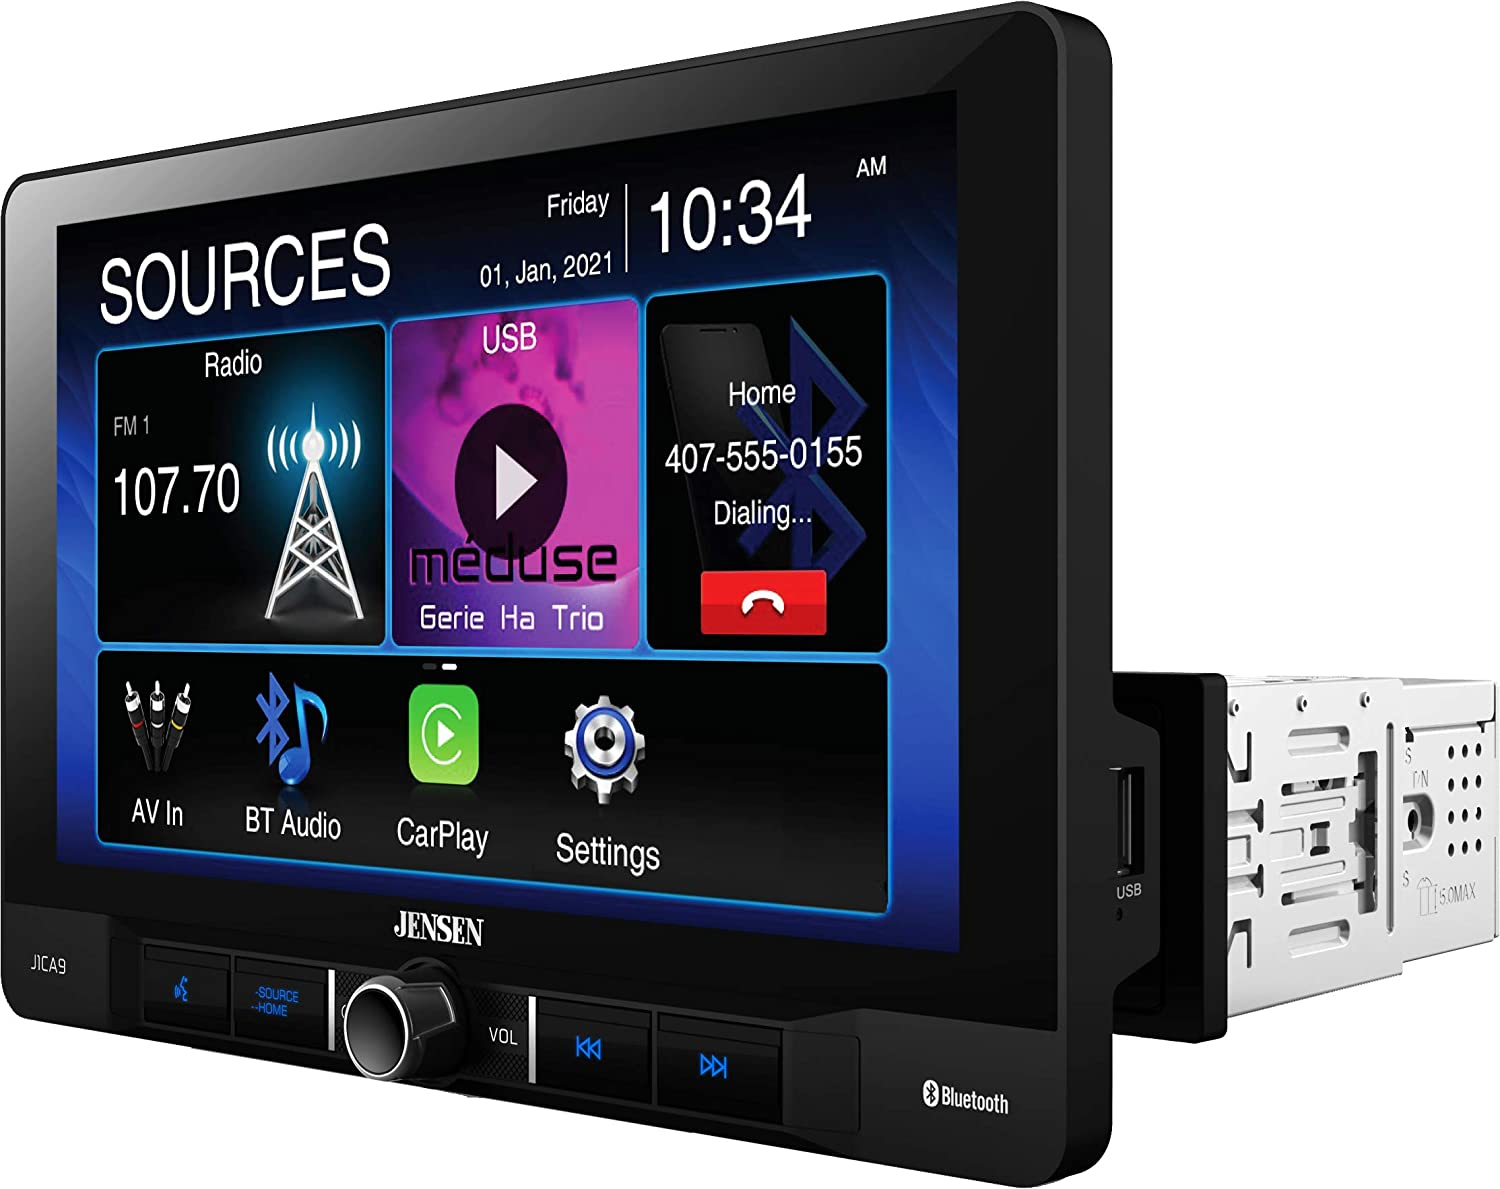 JENSEN J1CA9 9-inch Touch Screen Single DIN Car Stereo Media Receiver | Apple CarPlay Android Auto | Bluetooth | USB